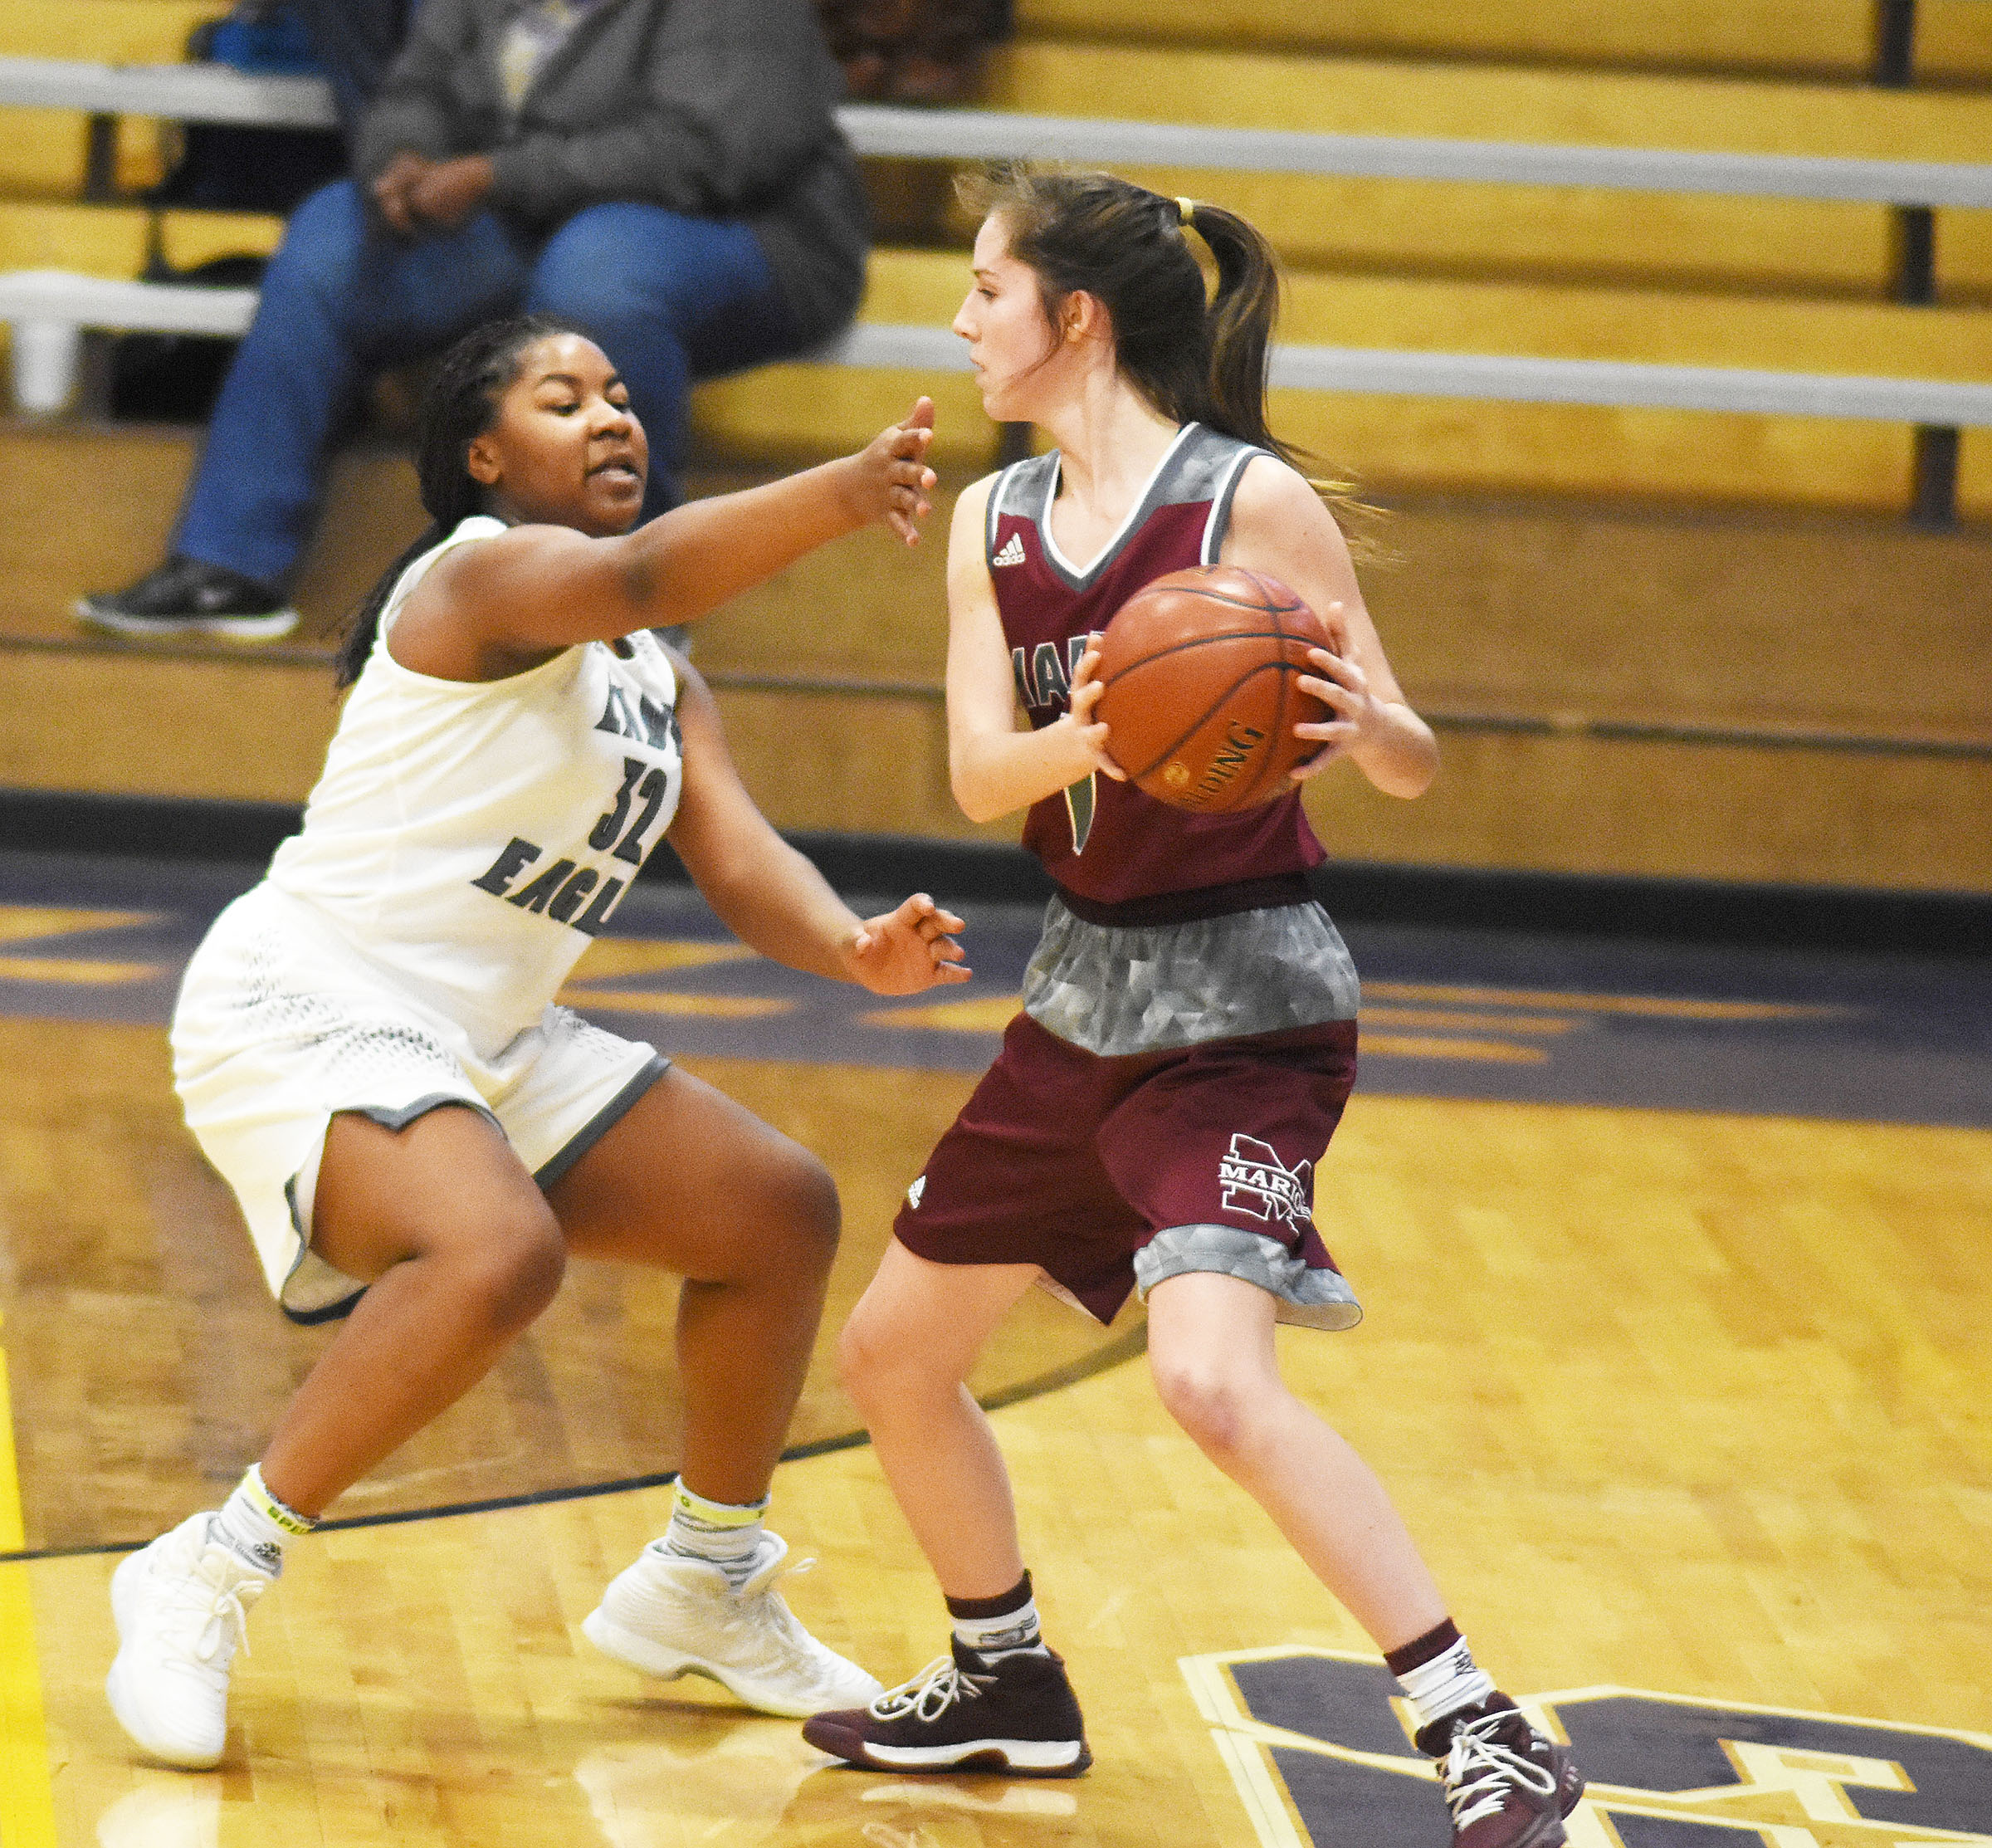 CHS senior Nena Barnett plays defense.